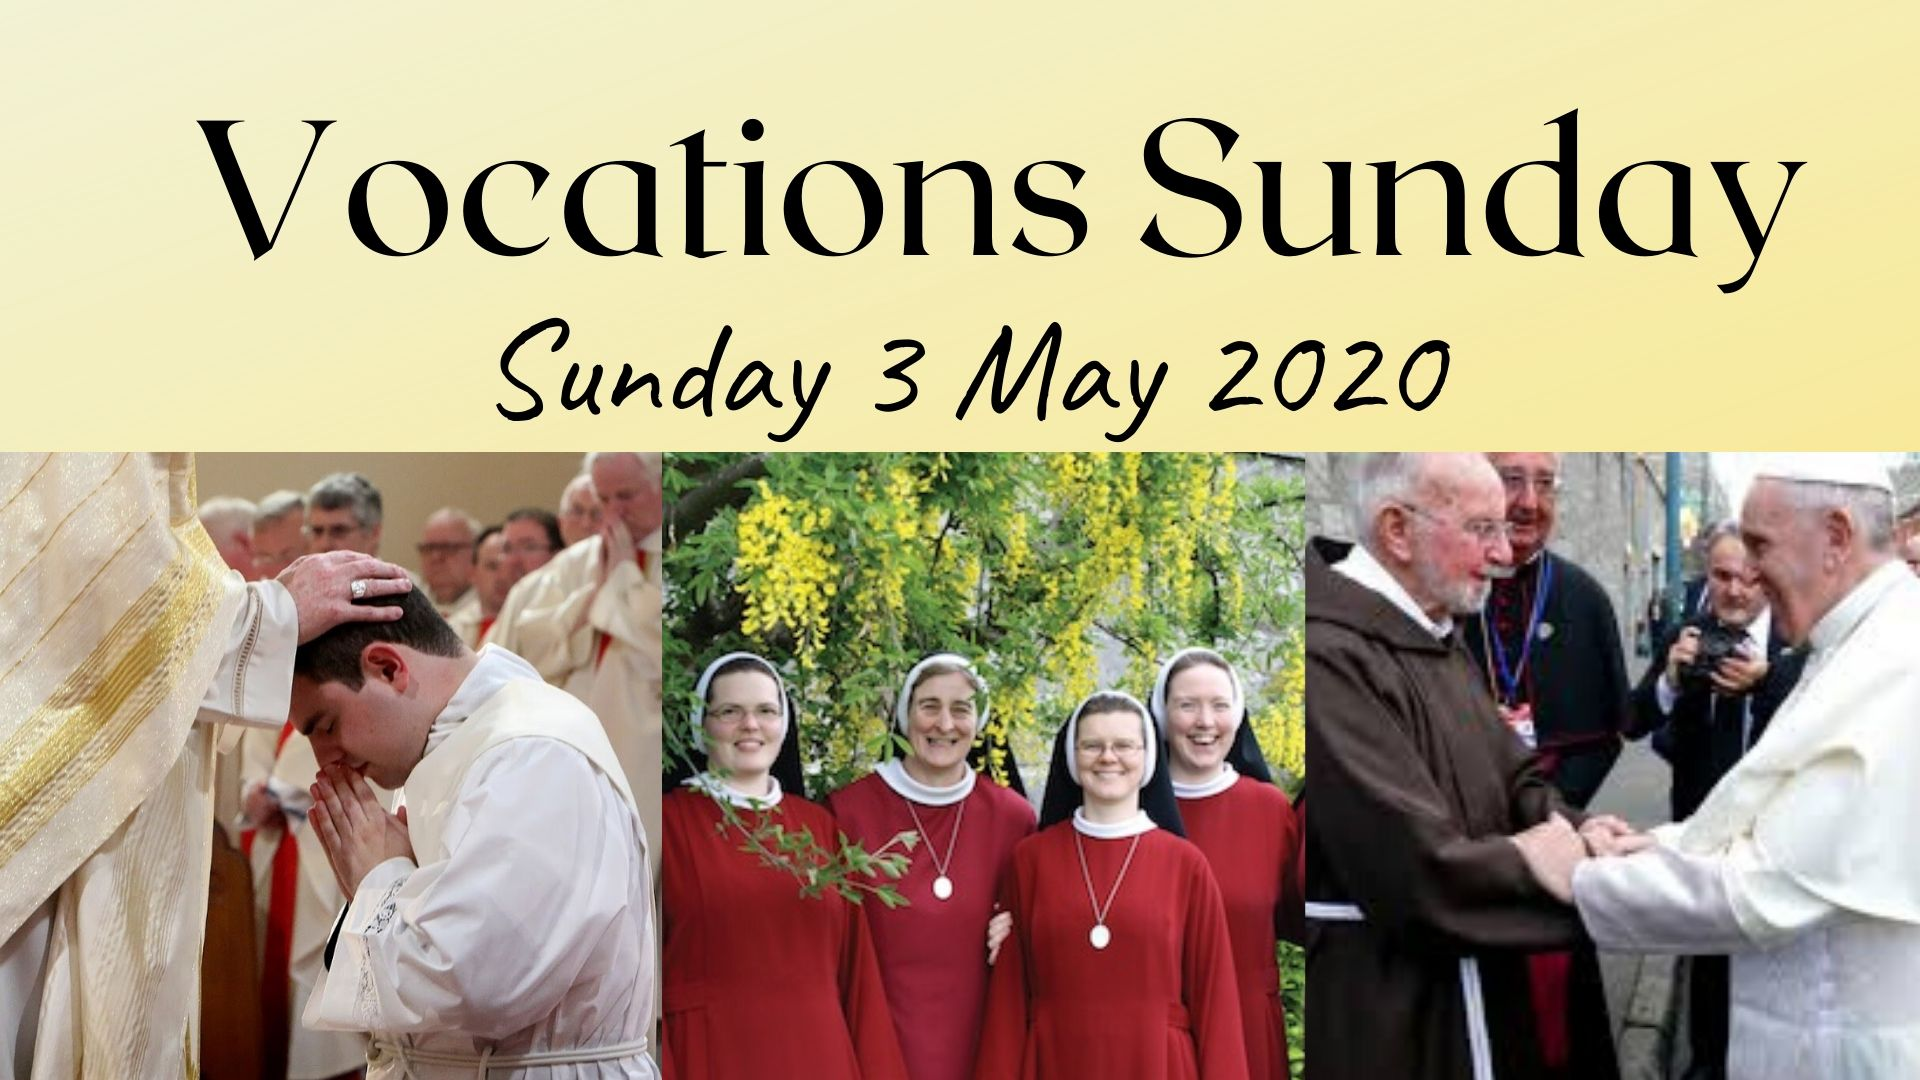 Vocations Sunday 2020